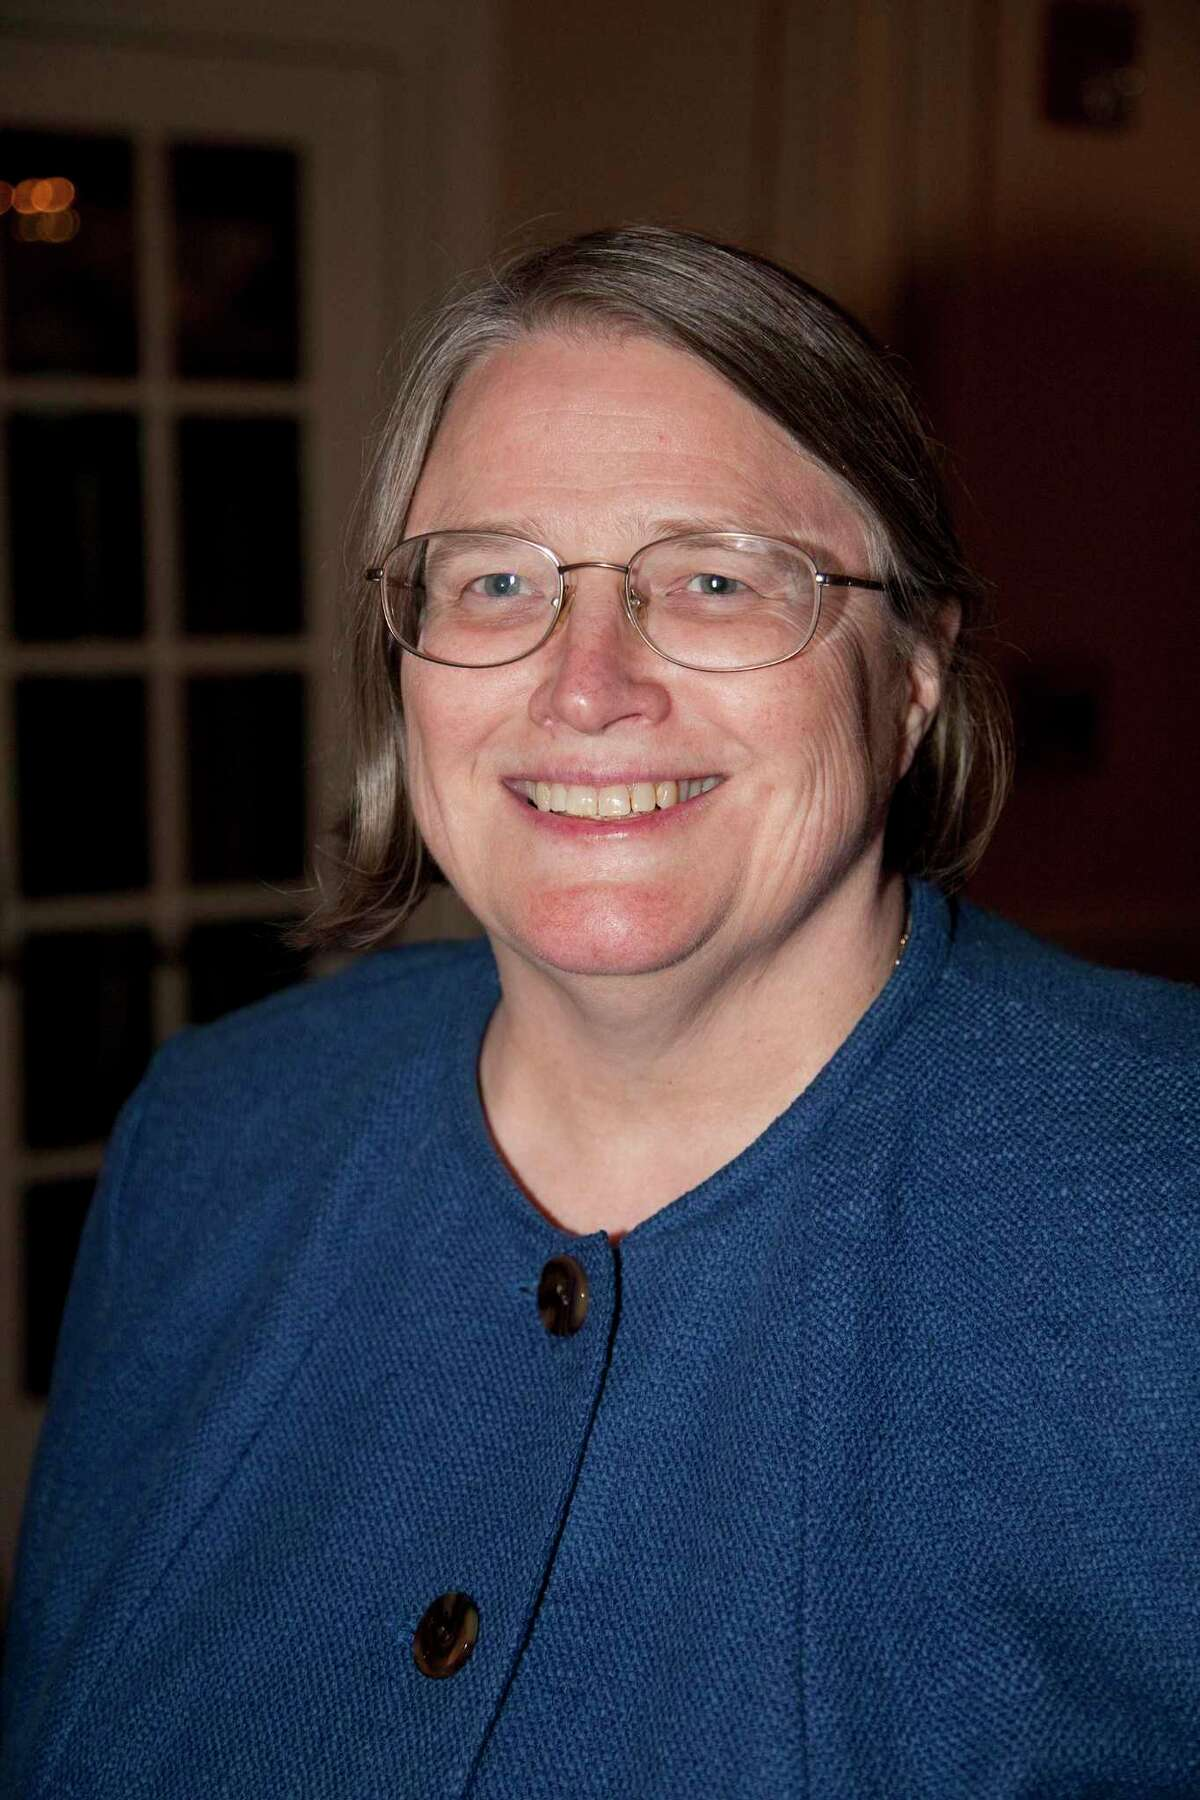 Jane Hogeman, a former president of the Greenwich Land Trust, was elected to the Council in her new hometown of Pinehurst, N.C.